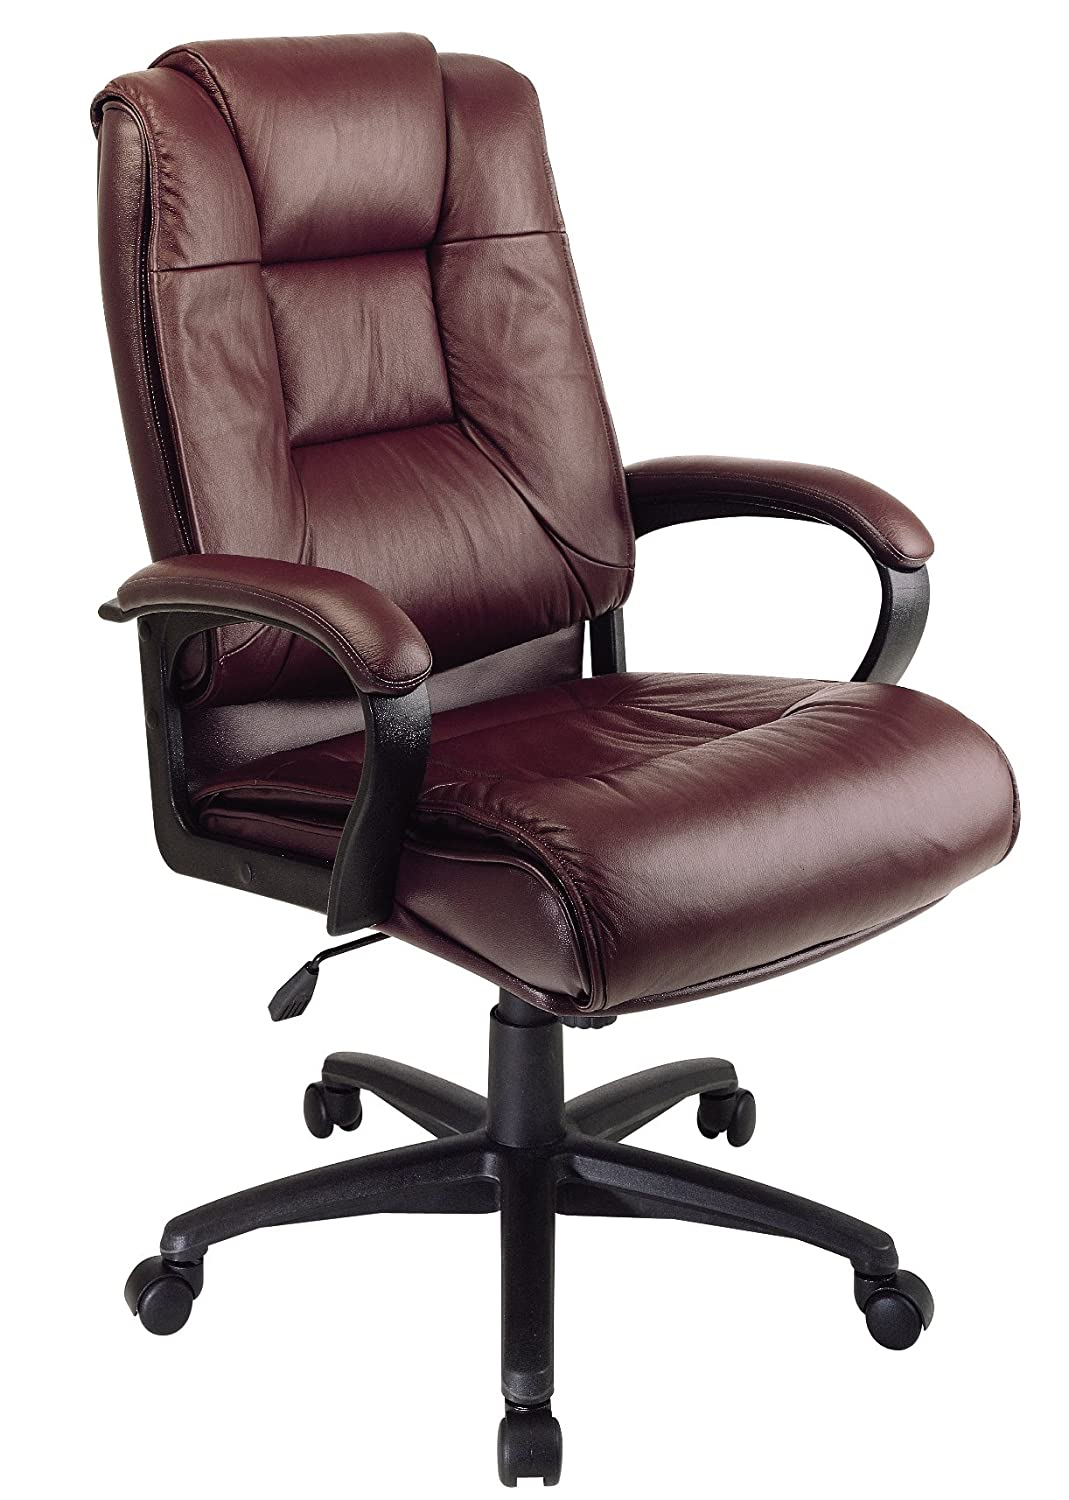 Executive Chairs Office Star Executive Chairs Reviewed Office Chairs For